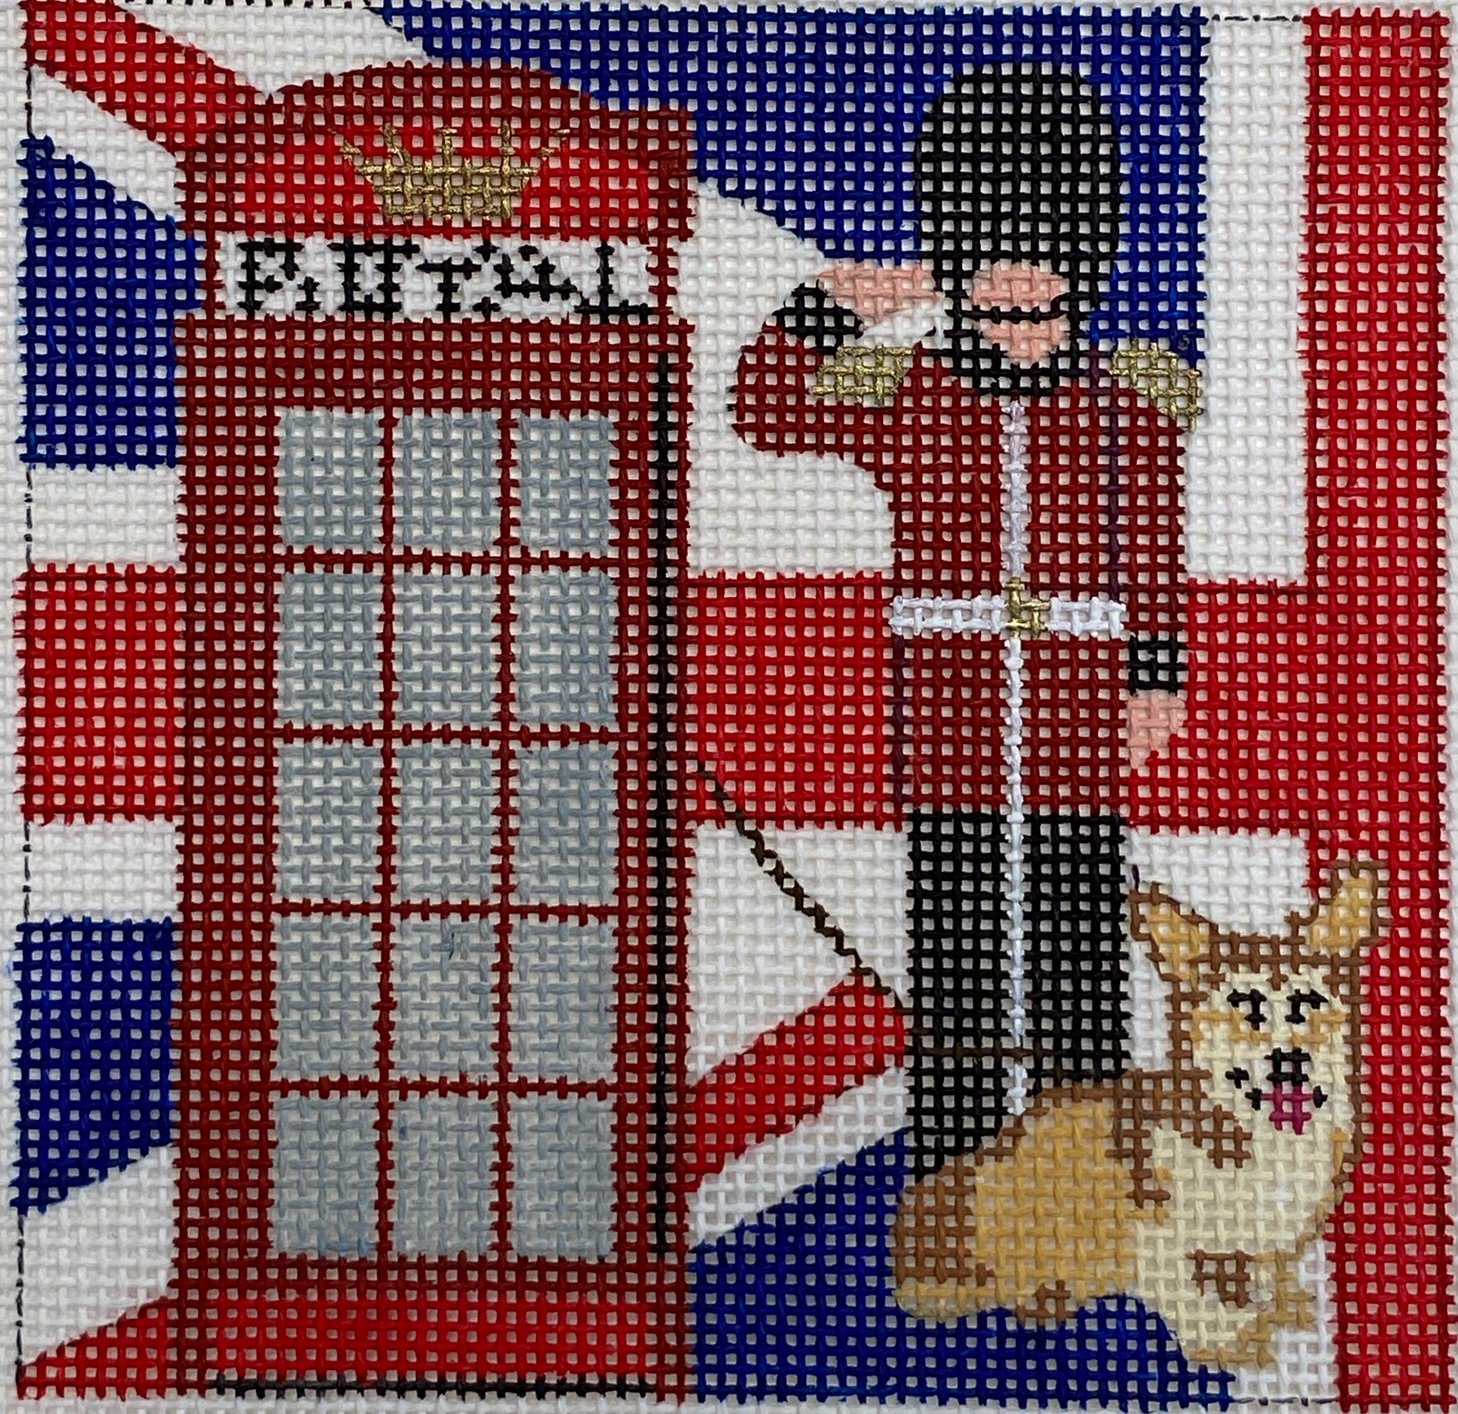 English Guard, Phone Booth, Dog